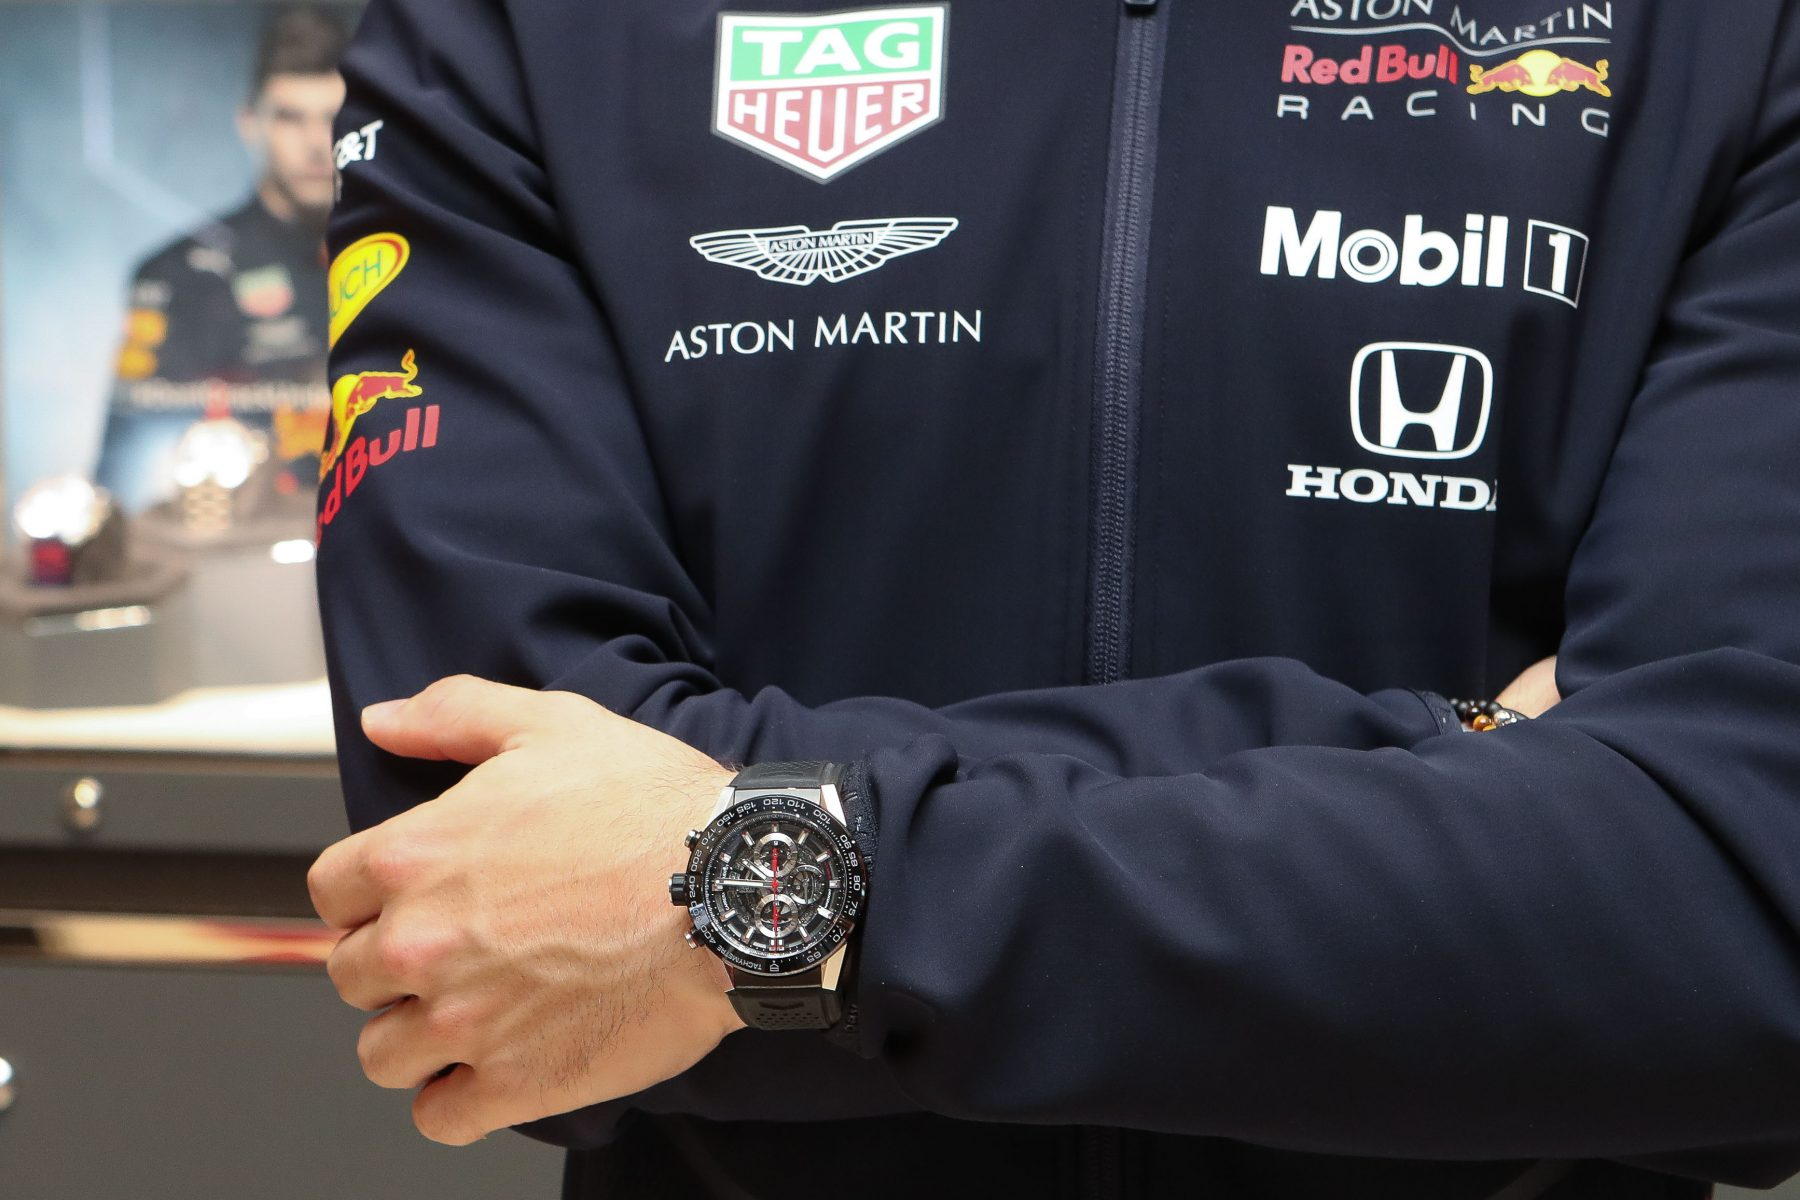 Tag Heuer Announces A Three Year Extension To Its Partnership With Aston Martin Red Bull Racing Hours And Minutes Australia S First Of Its Kind Leading Online And Print Watch Magazine Tabloid